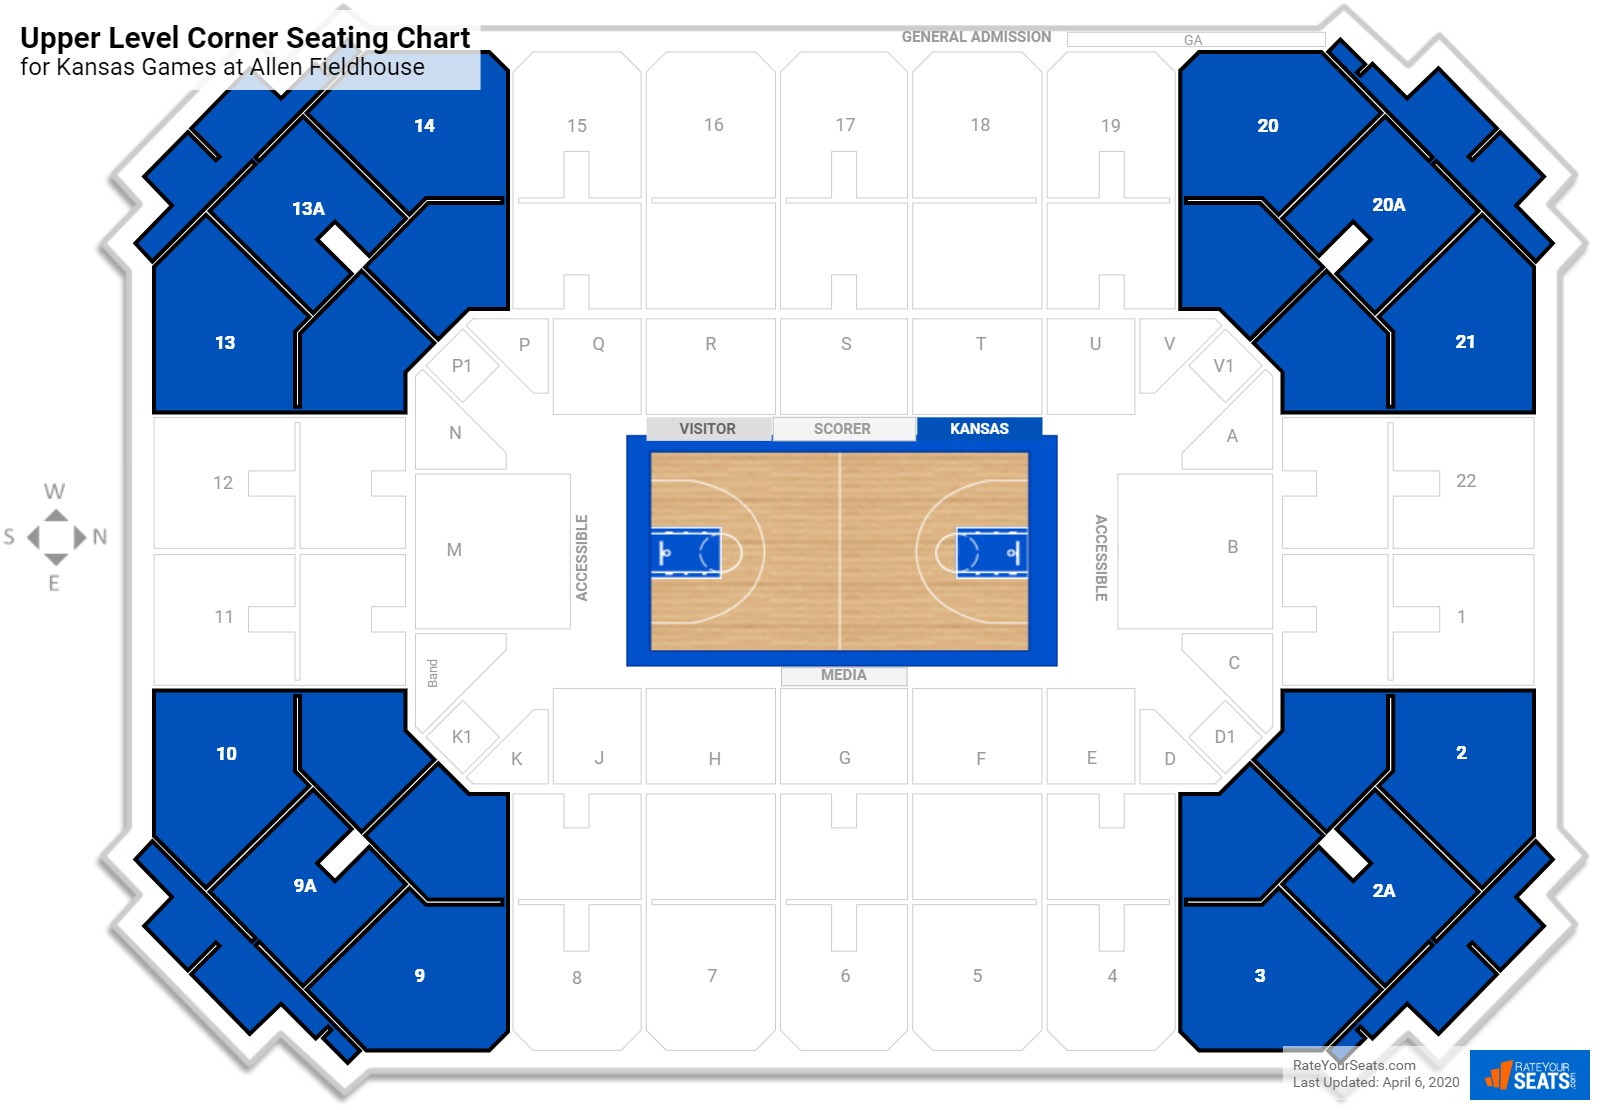 Allen Fieldhouse Upper Level Corner seating chart